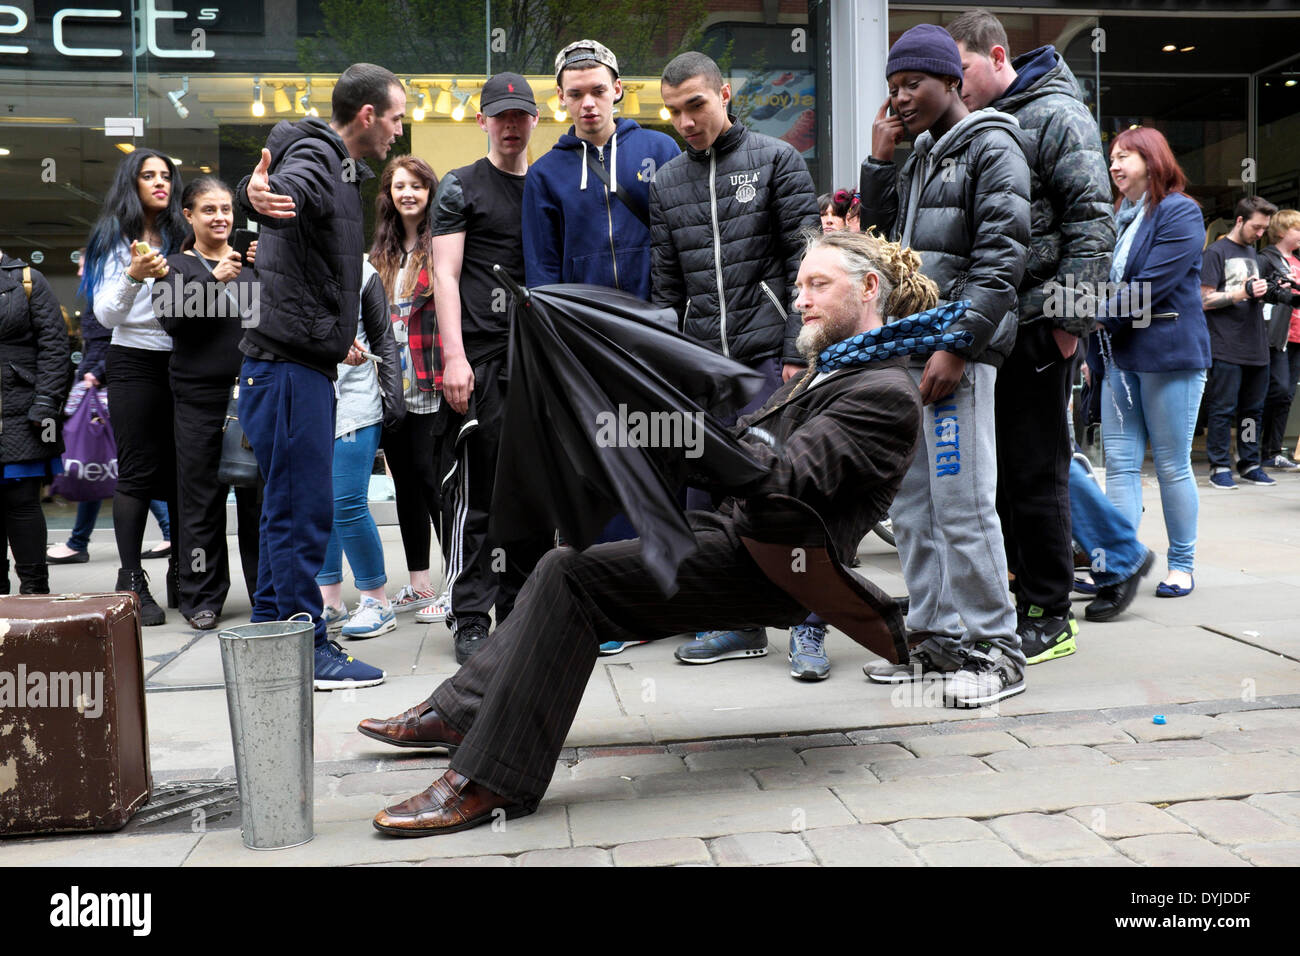 Manchester, UK. 19th April 2014. A young man tries to explain to his friends how a gravity-defying street performer Stock Photo